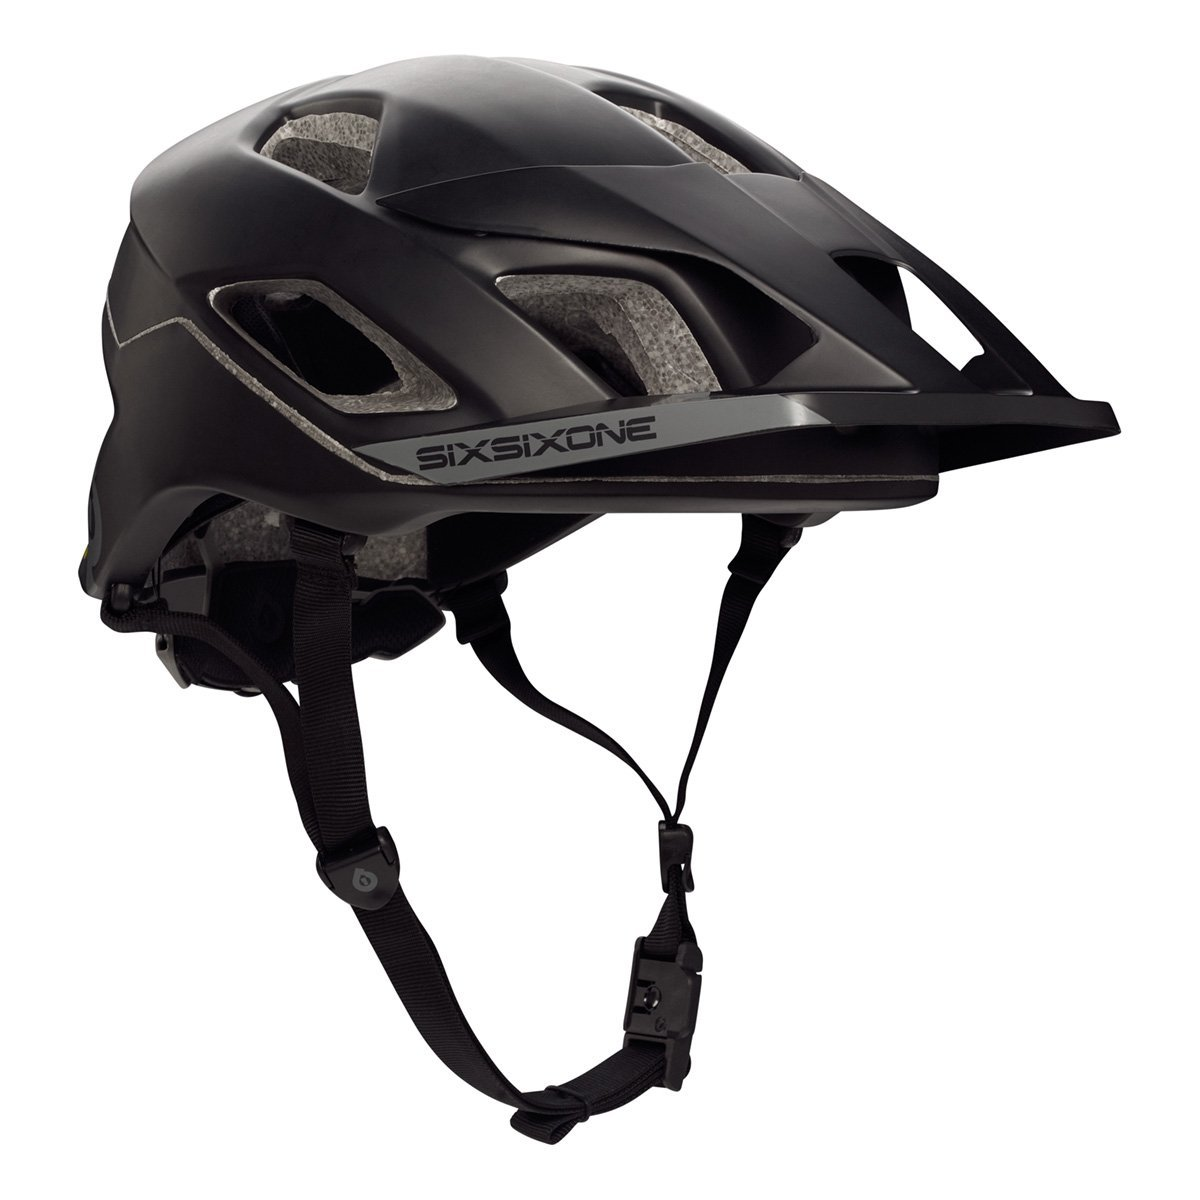 Black SixSixOne Bicycle Helmets